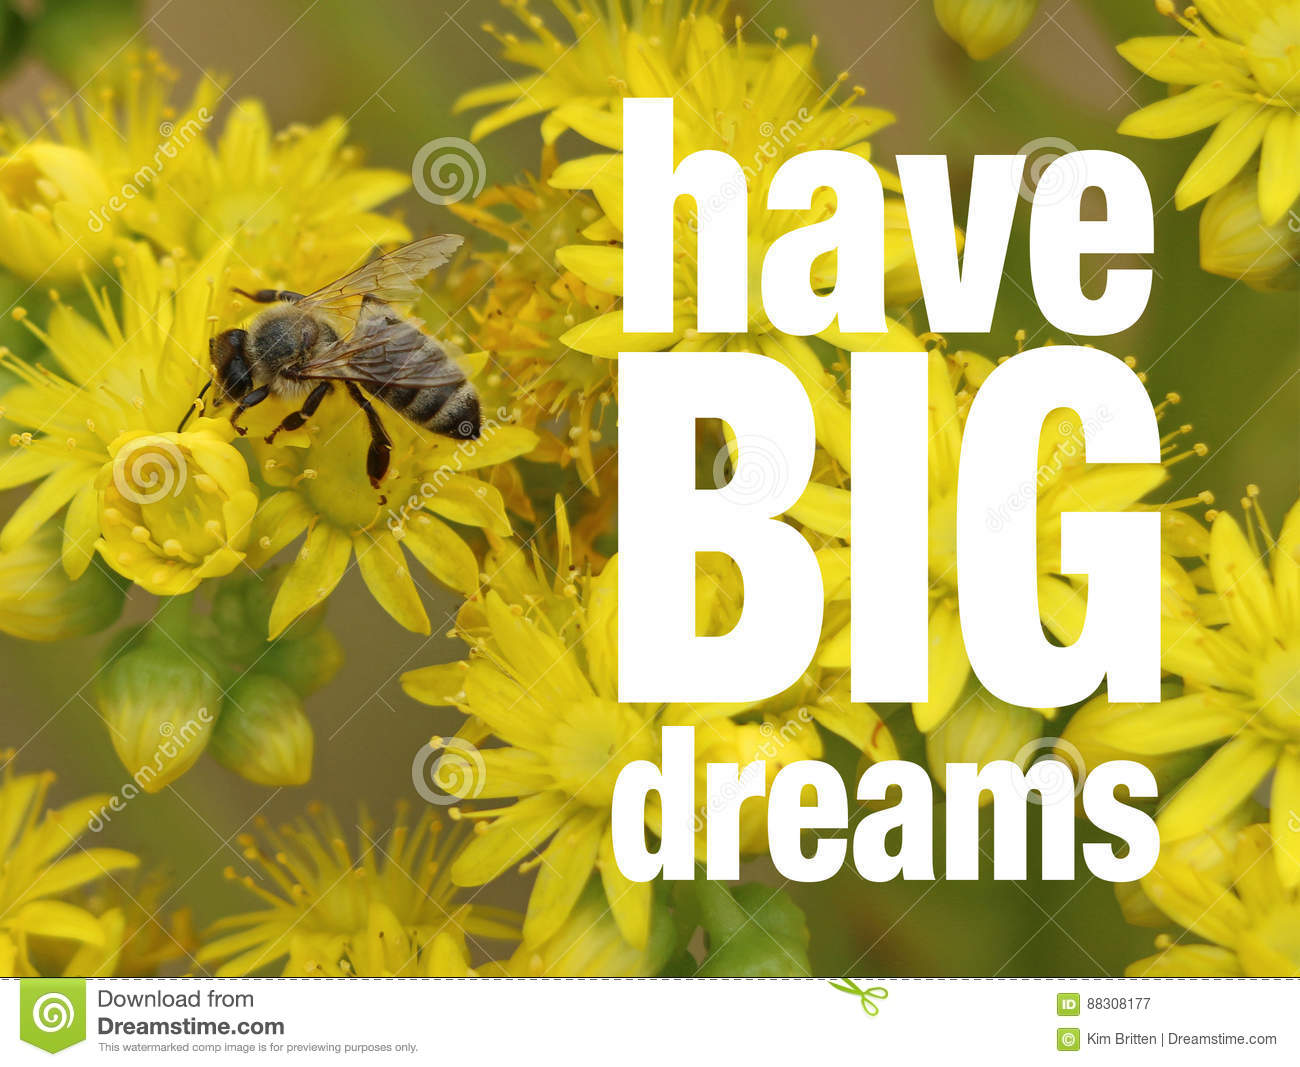 2 296 Flowers Quote Photos Free Royalty Free Stock Photos From Dreamstime